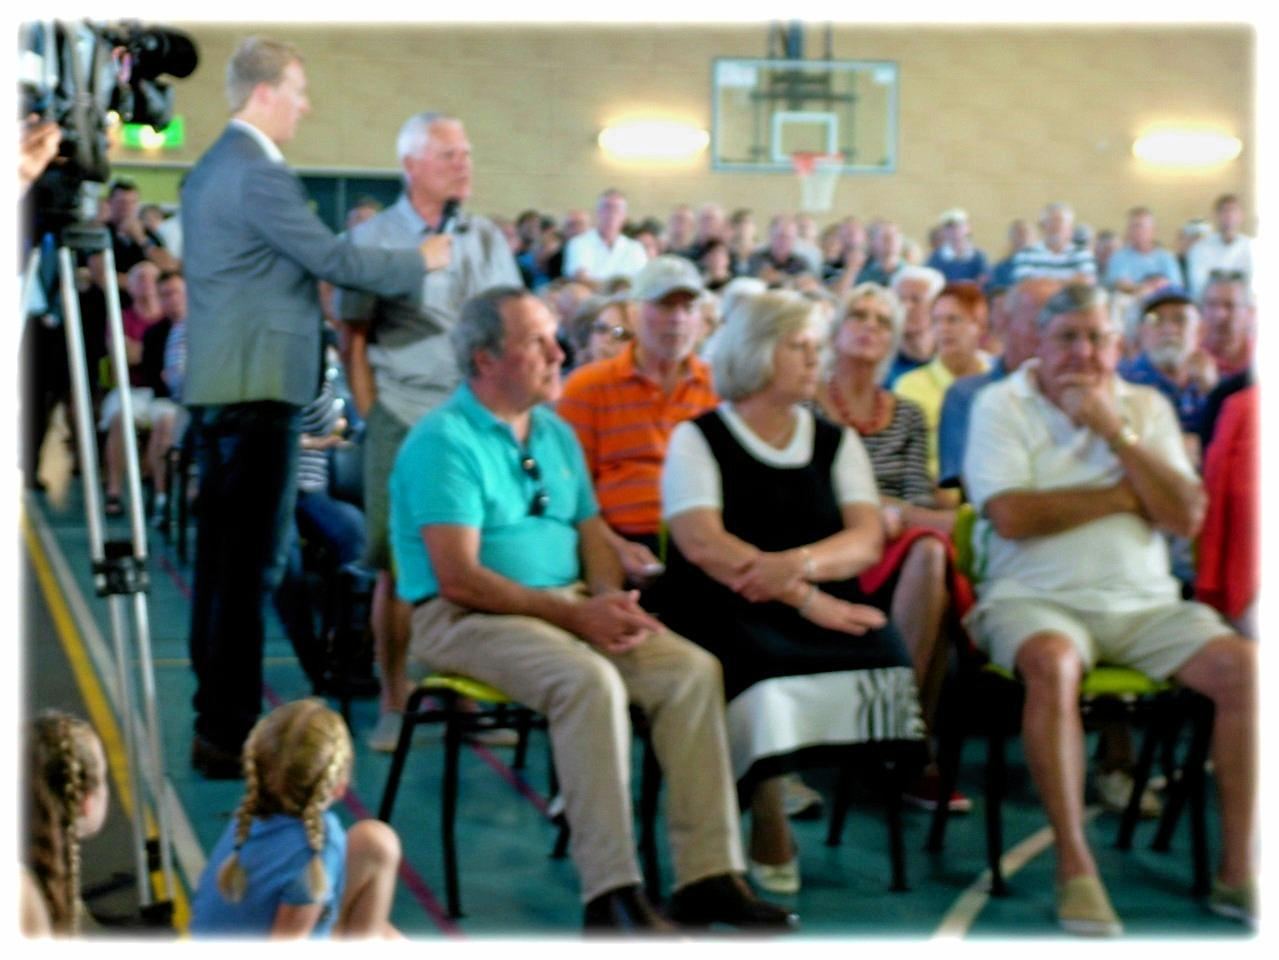 Making a stand for Peregian Springs community - more than 500 people demand the local golf club be saved from further development.